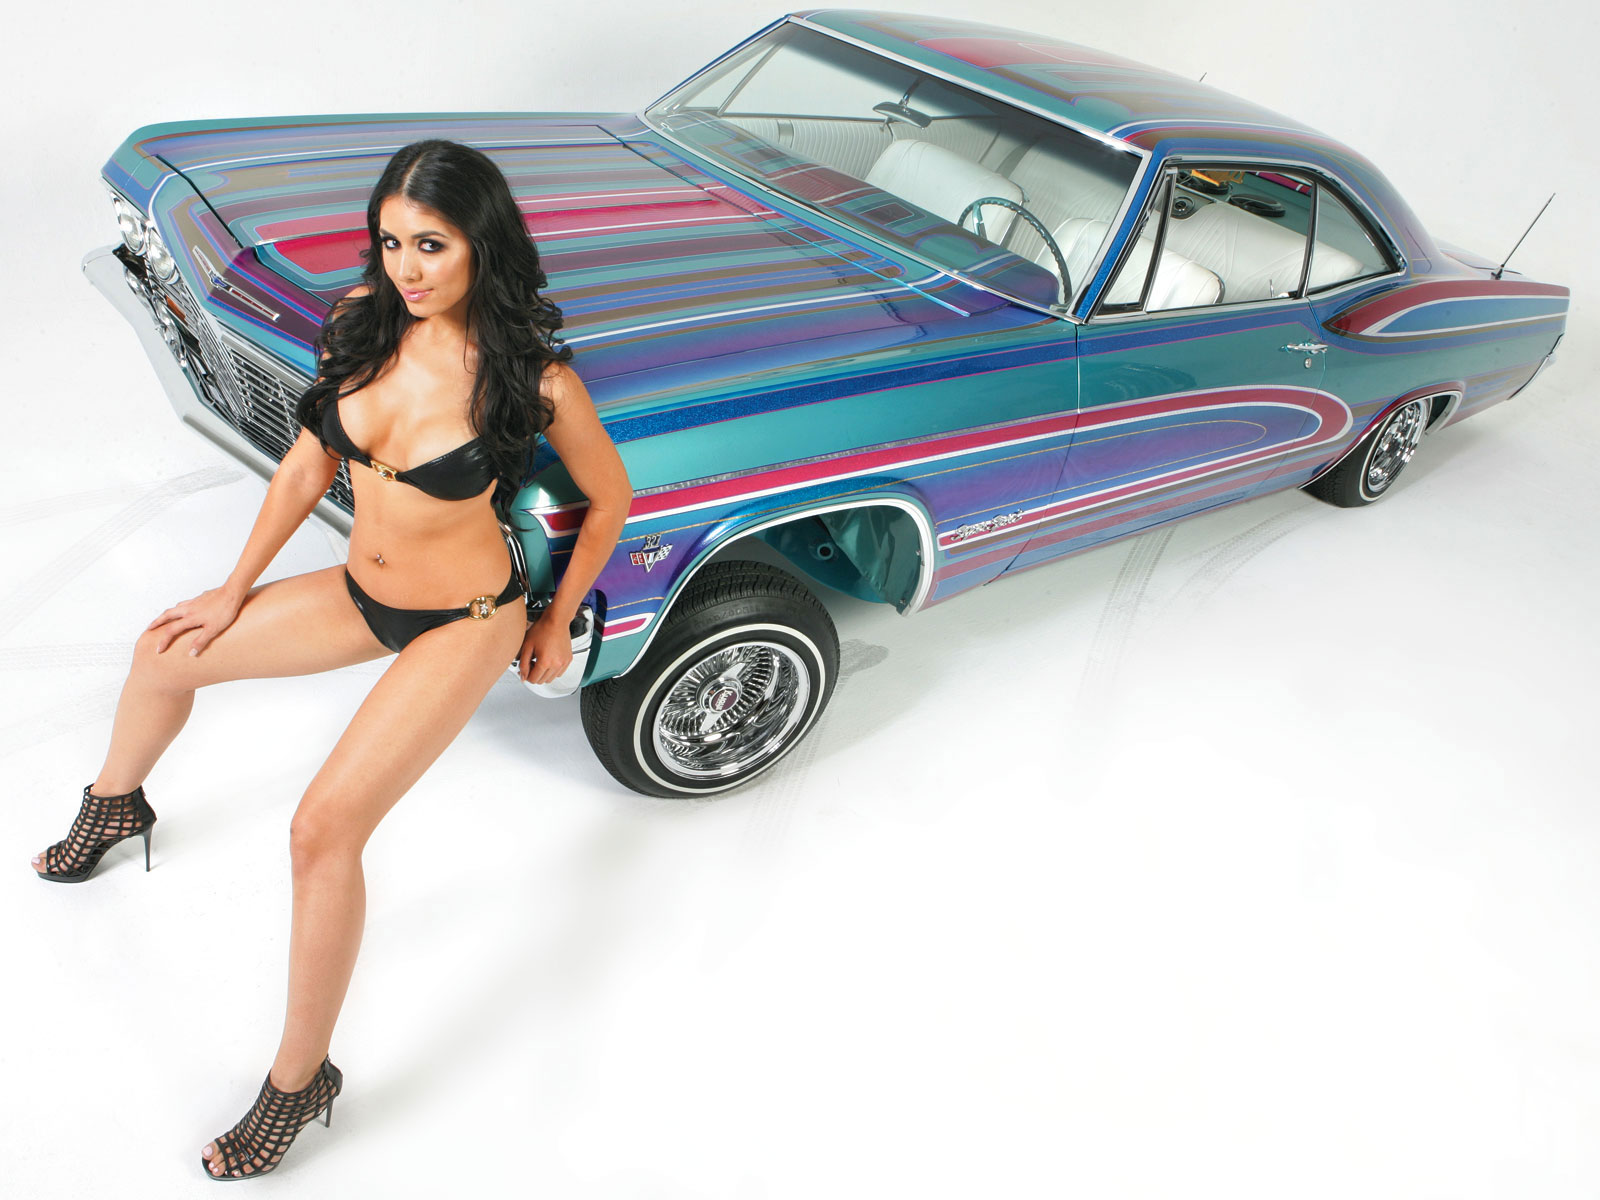 Naked girls and lowrider cars fat girls bent